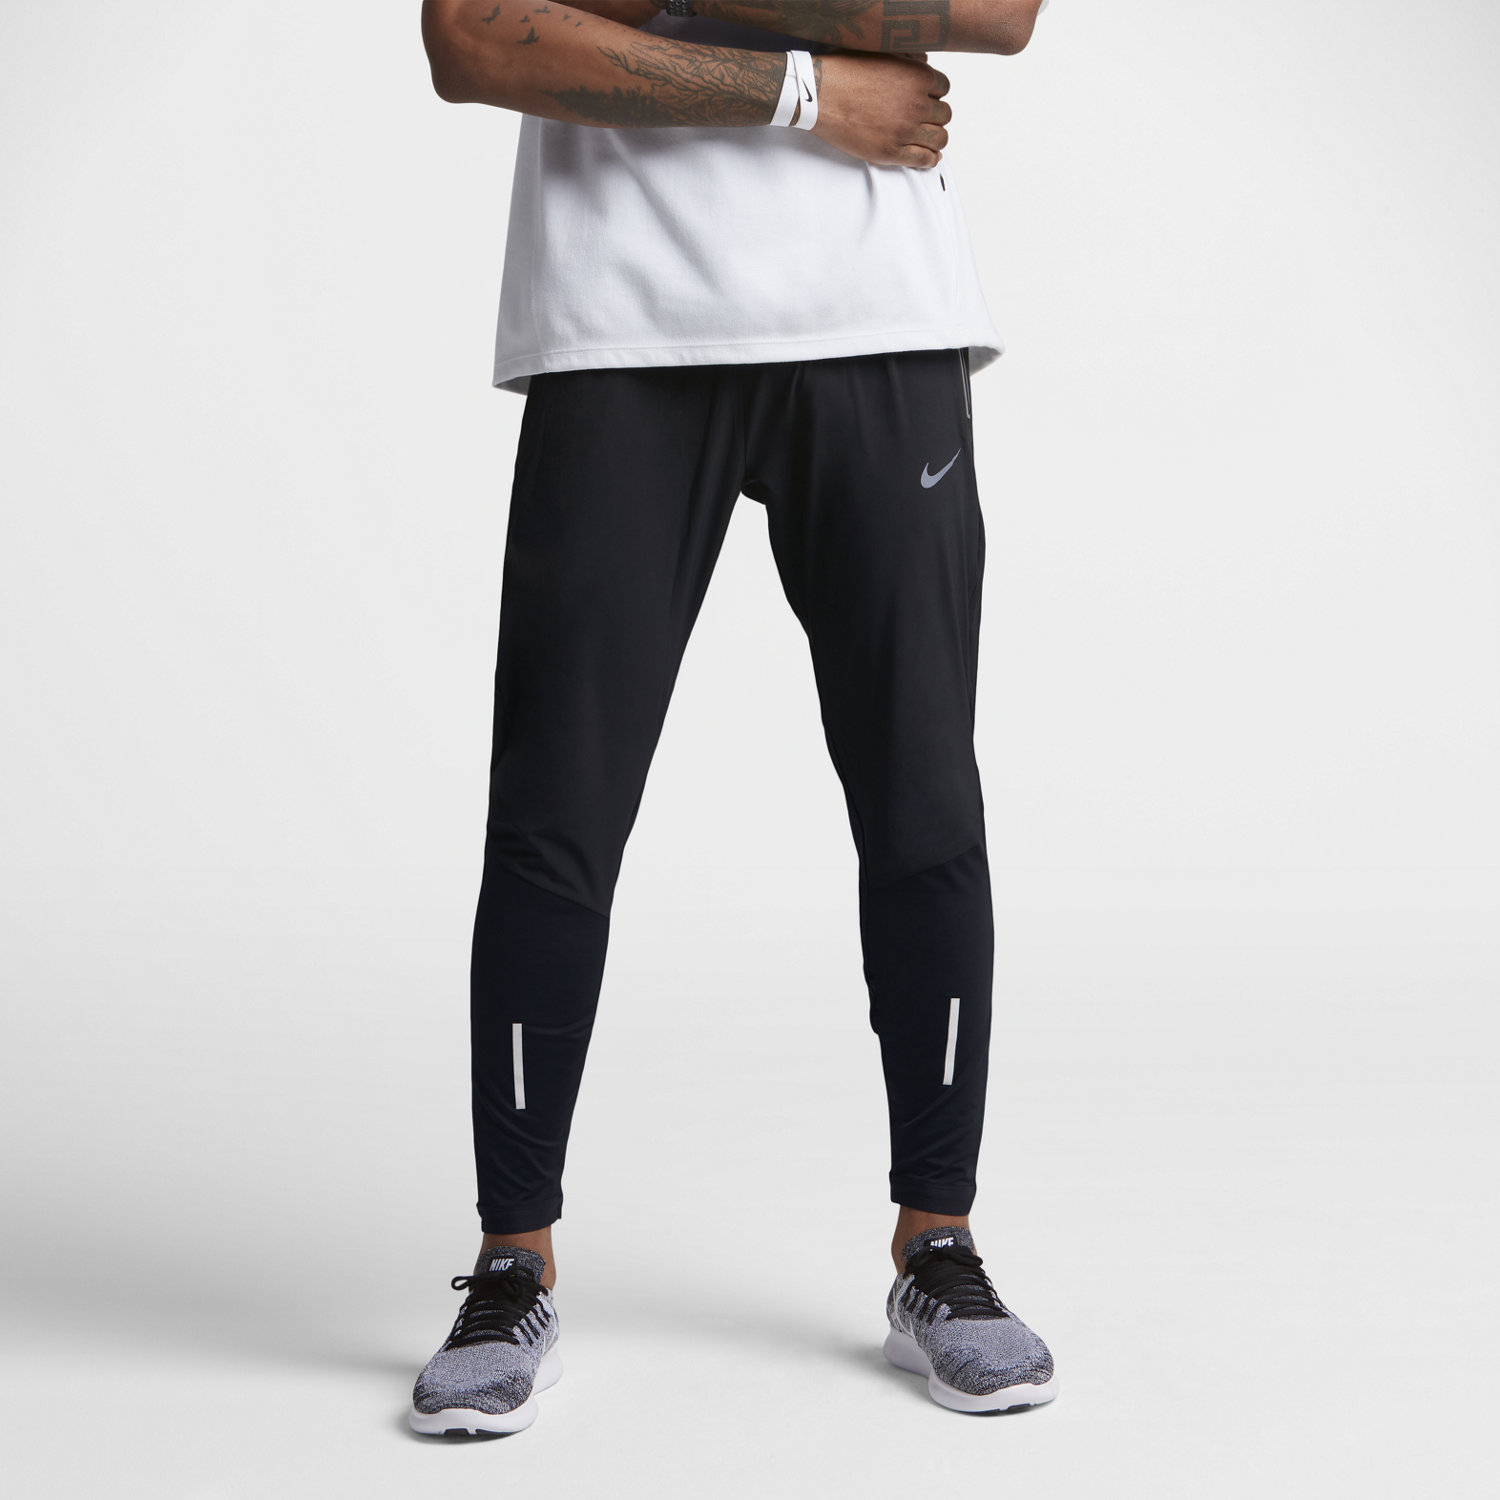 Superb Men's Workout Gym Compression Leggings Mens leggings also called compression pants and tights, mens compression leggings, mens running leggings, mens sports leggings, mens fashion leggings, mens athletic leggings, compression tights men, mens lycra leggings, mens black leggings, guys in leggings, mens sports tights, mens gym leggings.